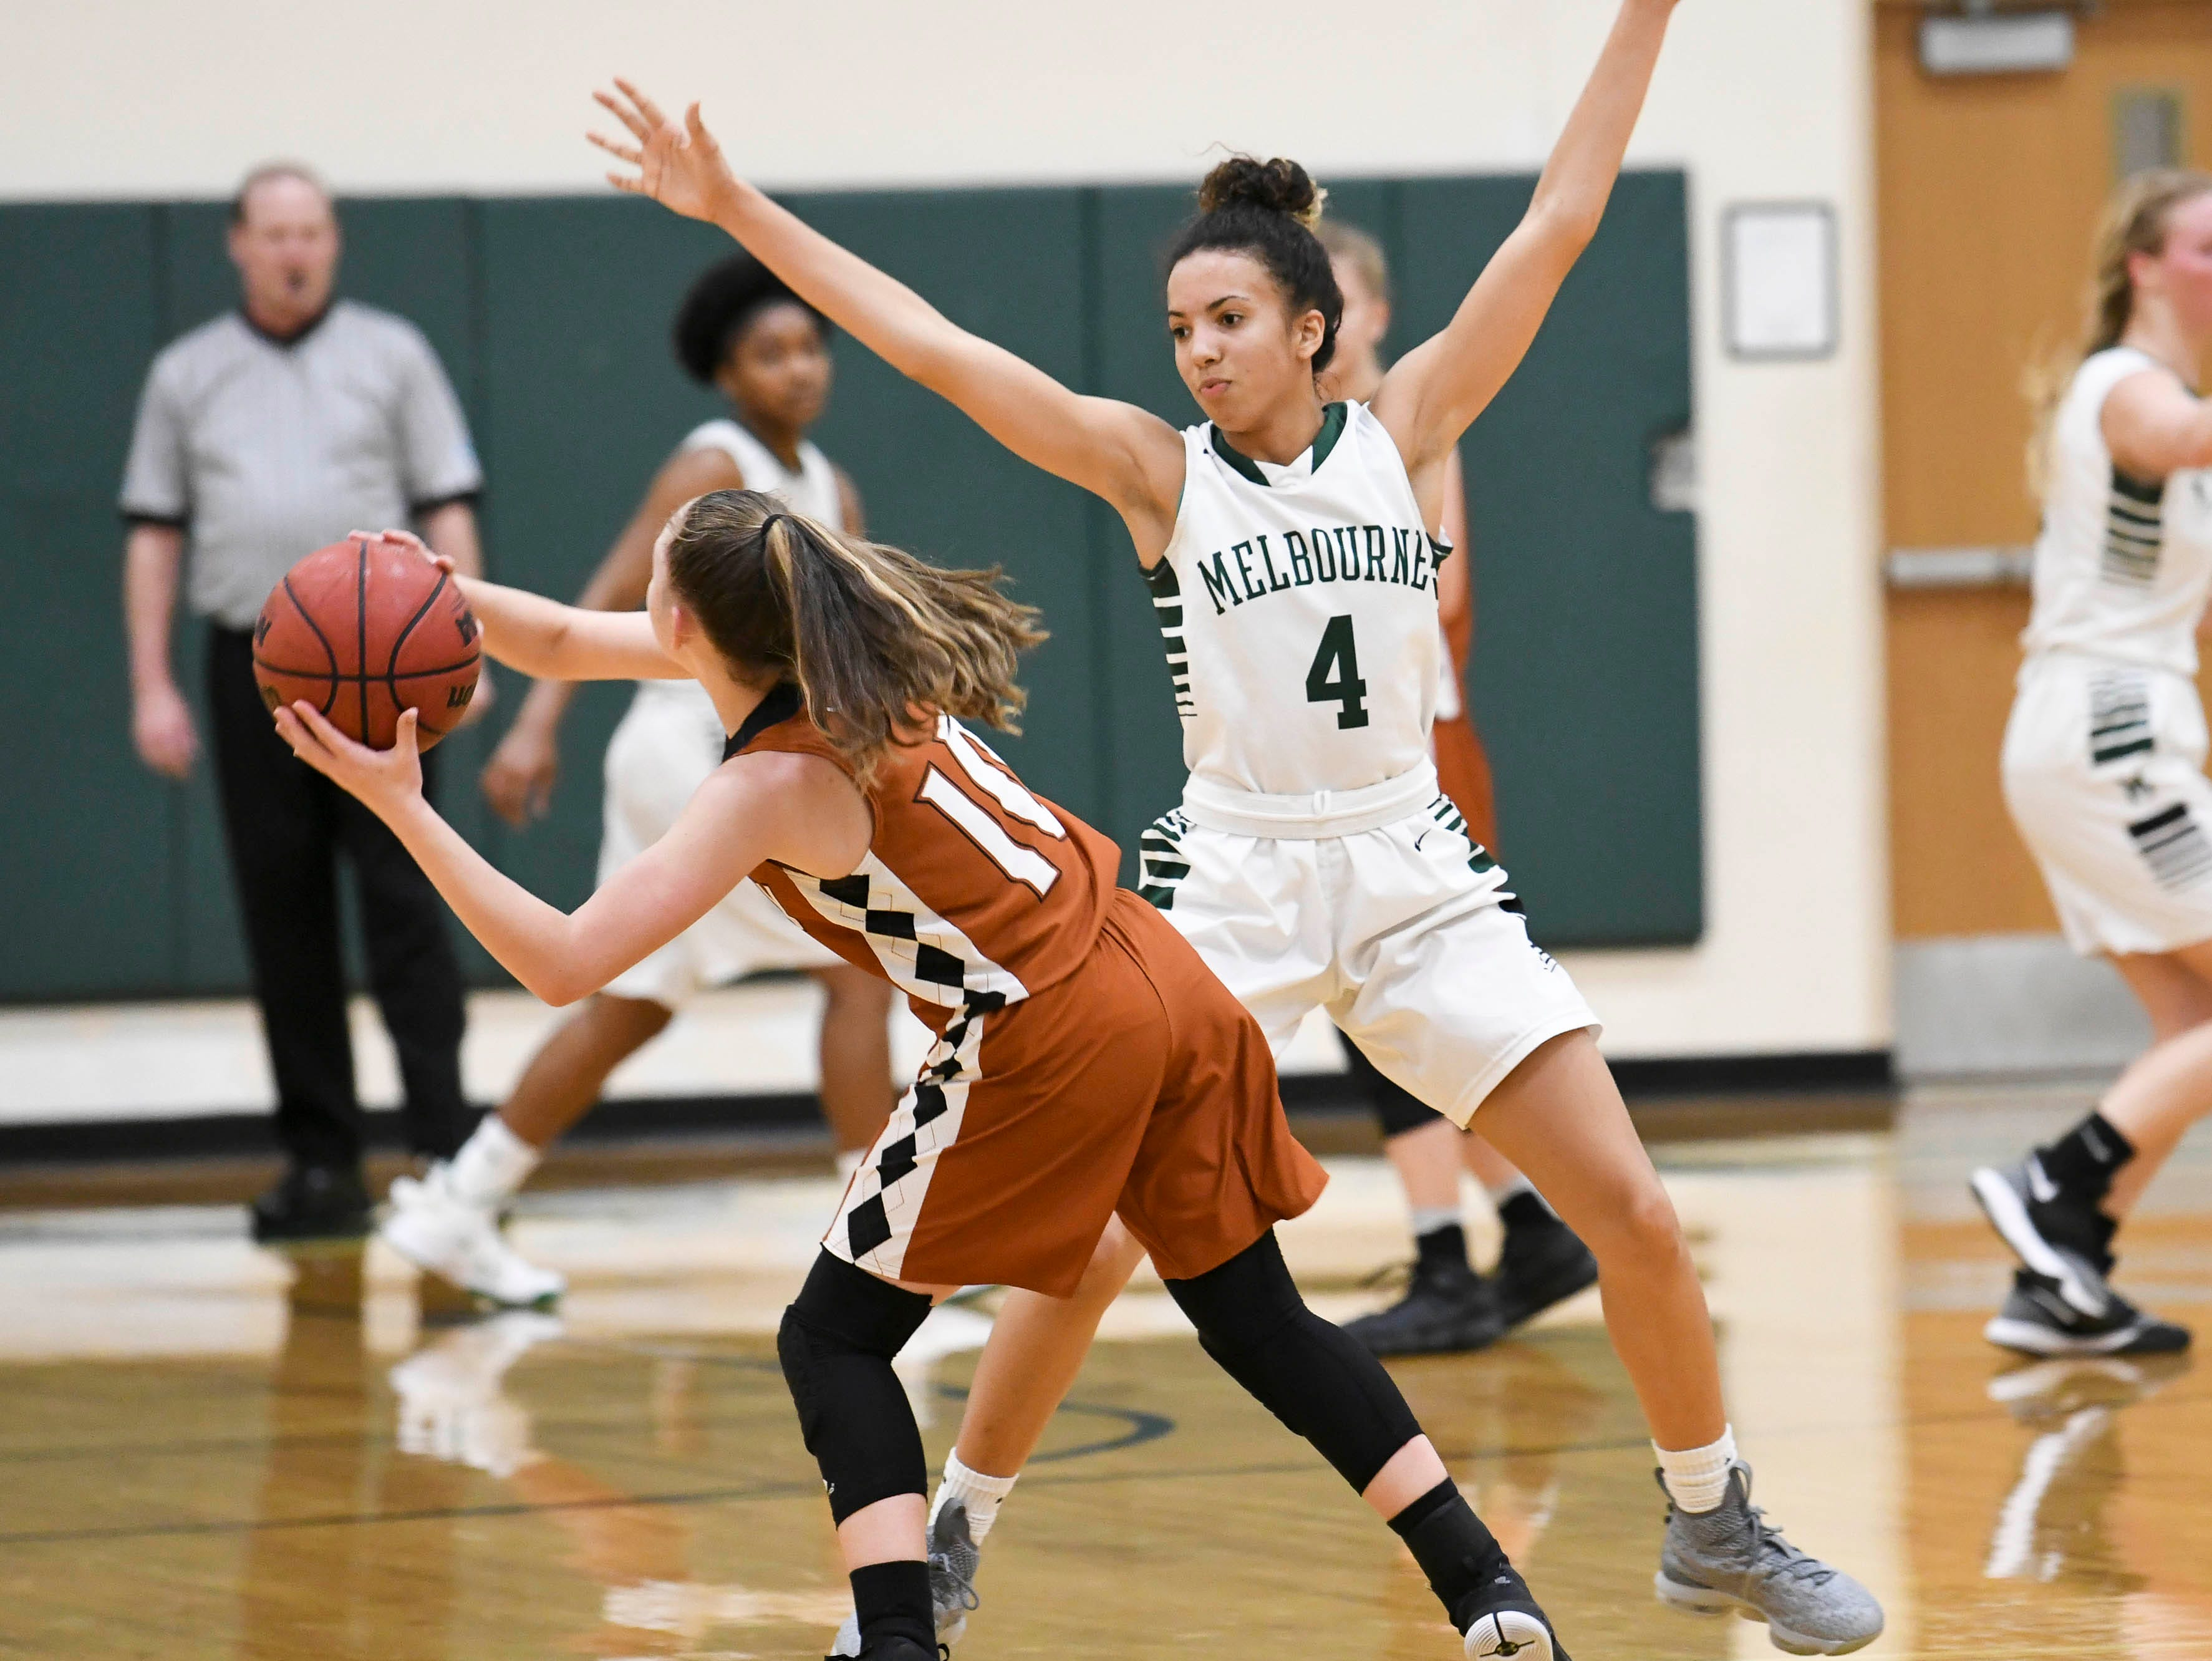 Melbourne's Jayla Charles guards Carlee Fitzgerald of Harmony during Tuesday's game in Melbourne.